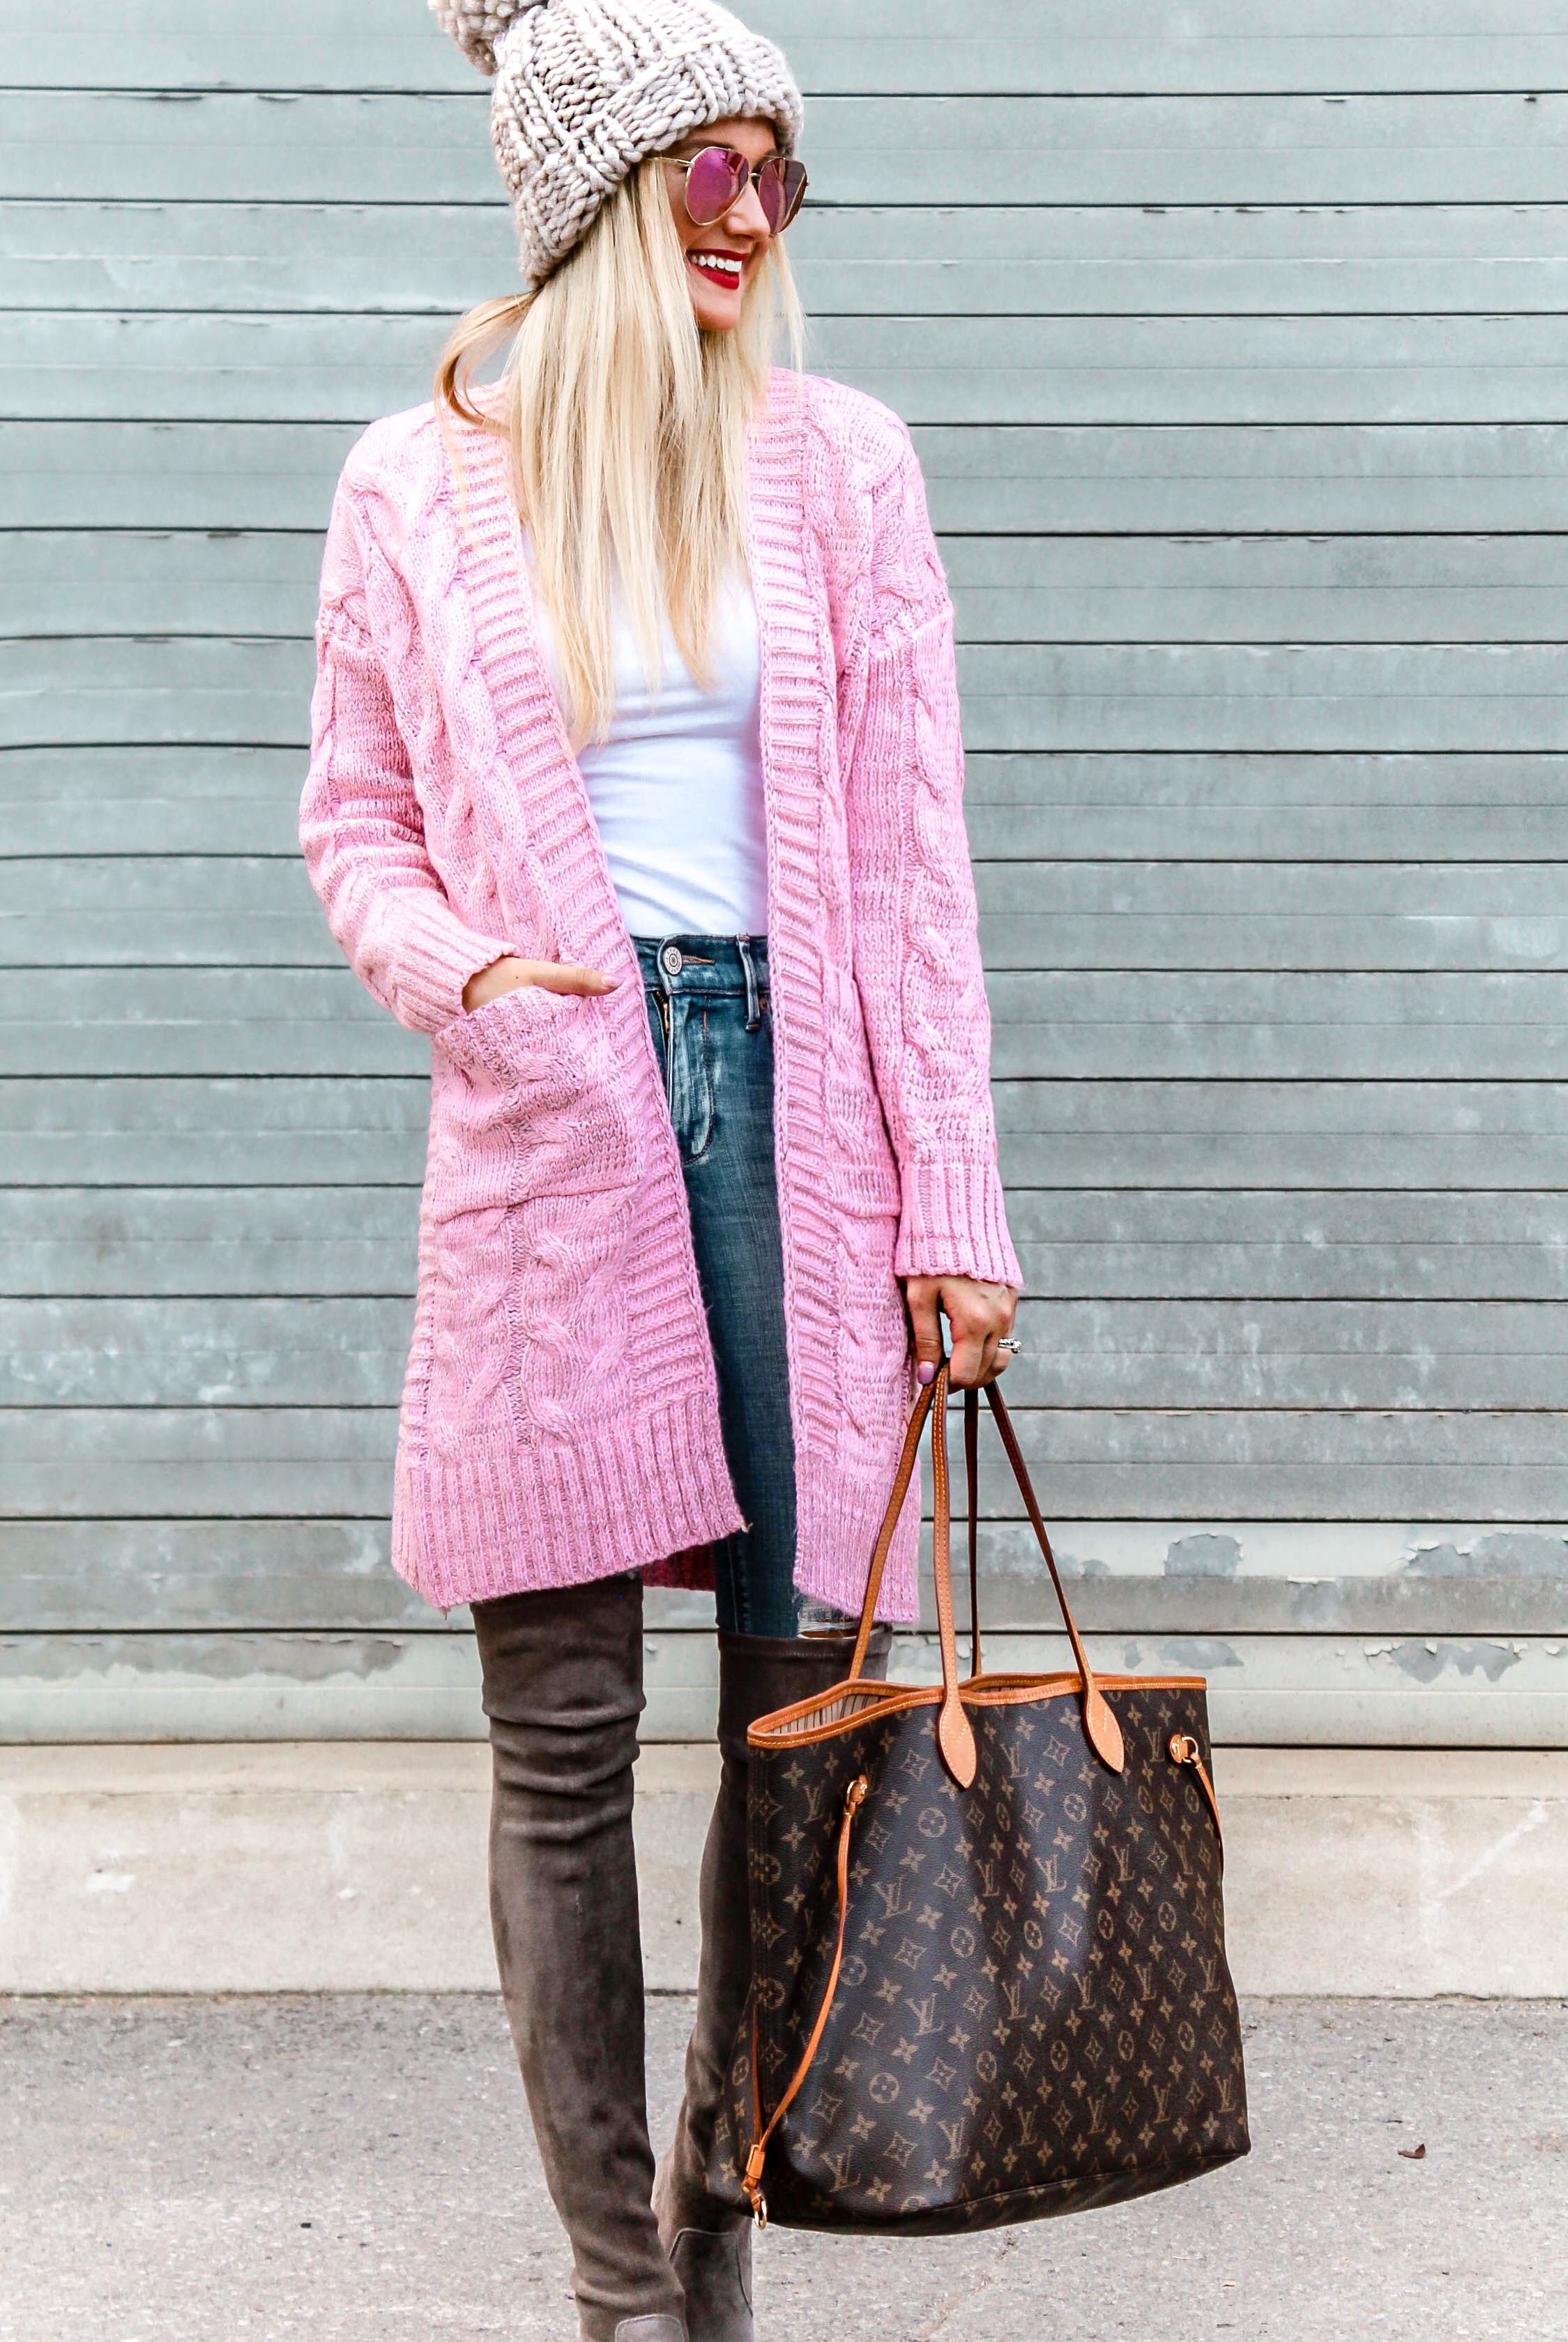 The Perfect Light Pink Cardi + My Trick to Whiter Teeth | love 'n' labels www.lovenlabels.com